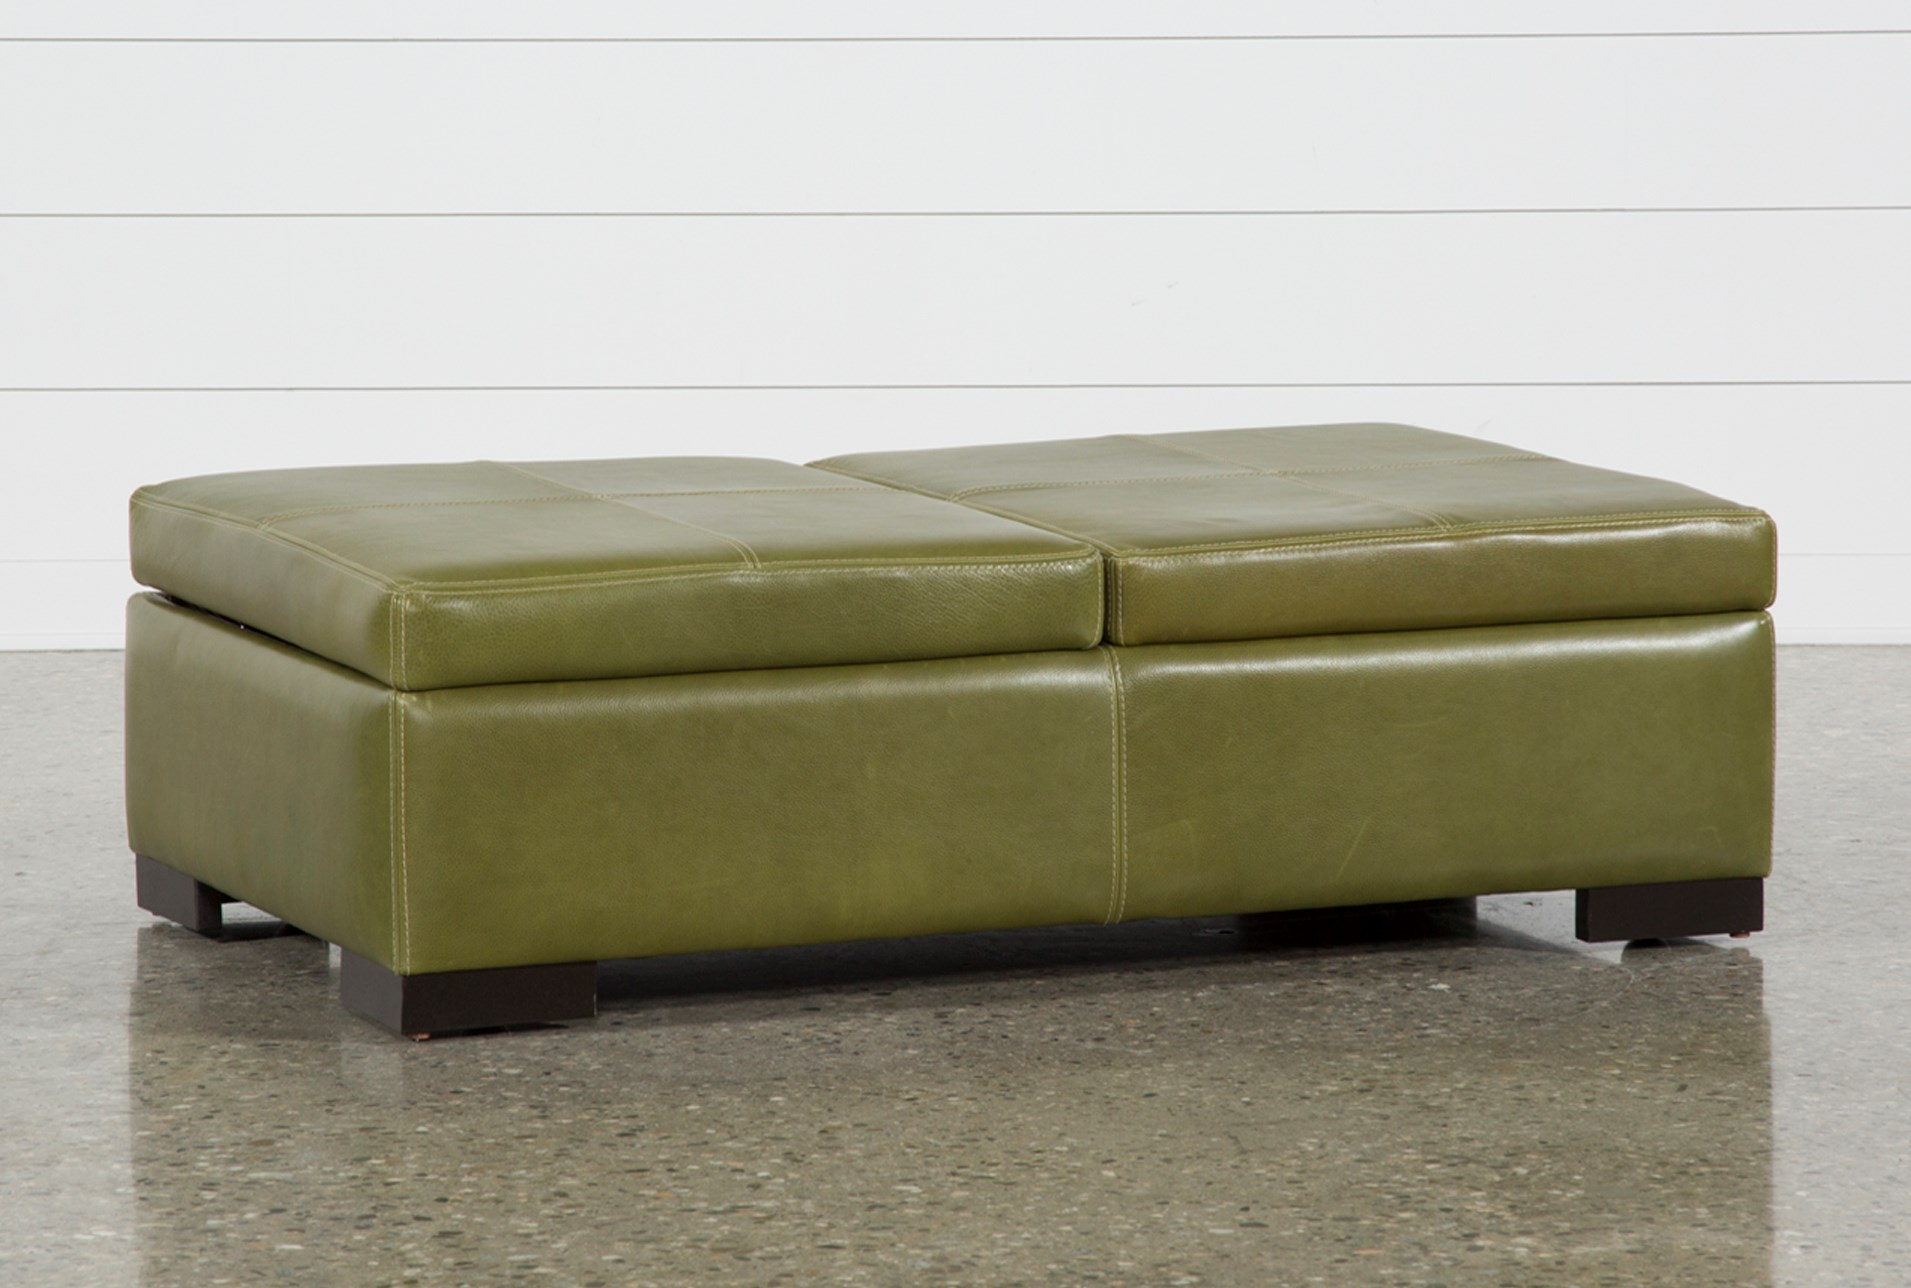 storage cocktail ottoman. Elm Grande II Leather Storage Cocktail Ottoman (Qty: 1) Has Been Successfully Added To Your Cart. C